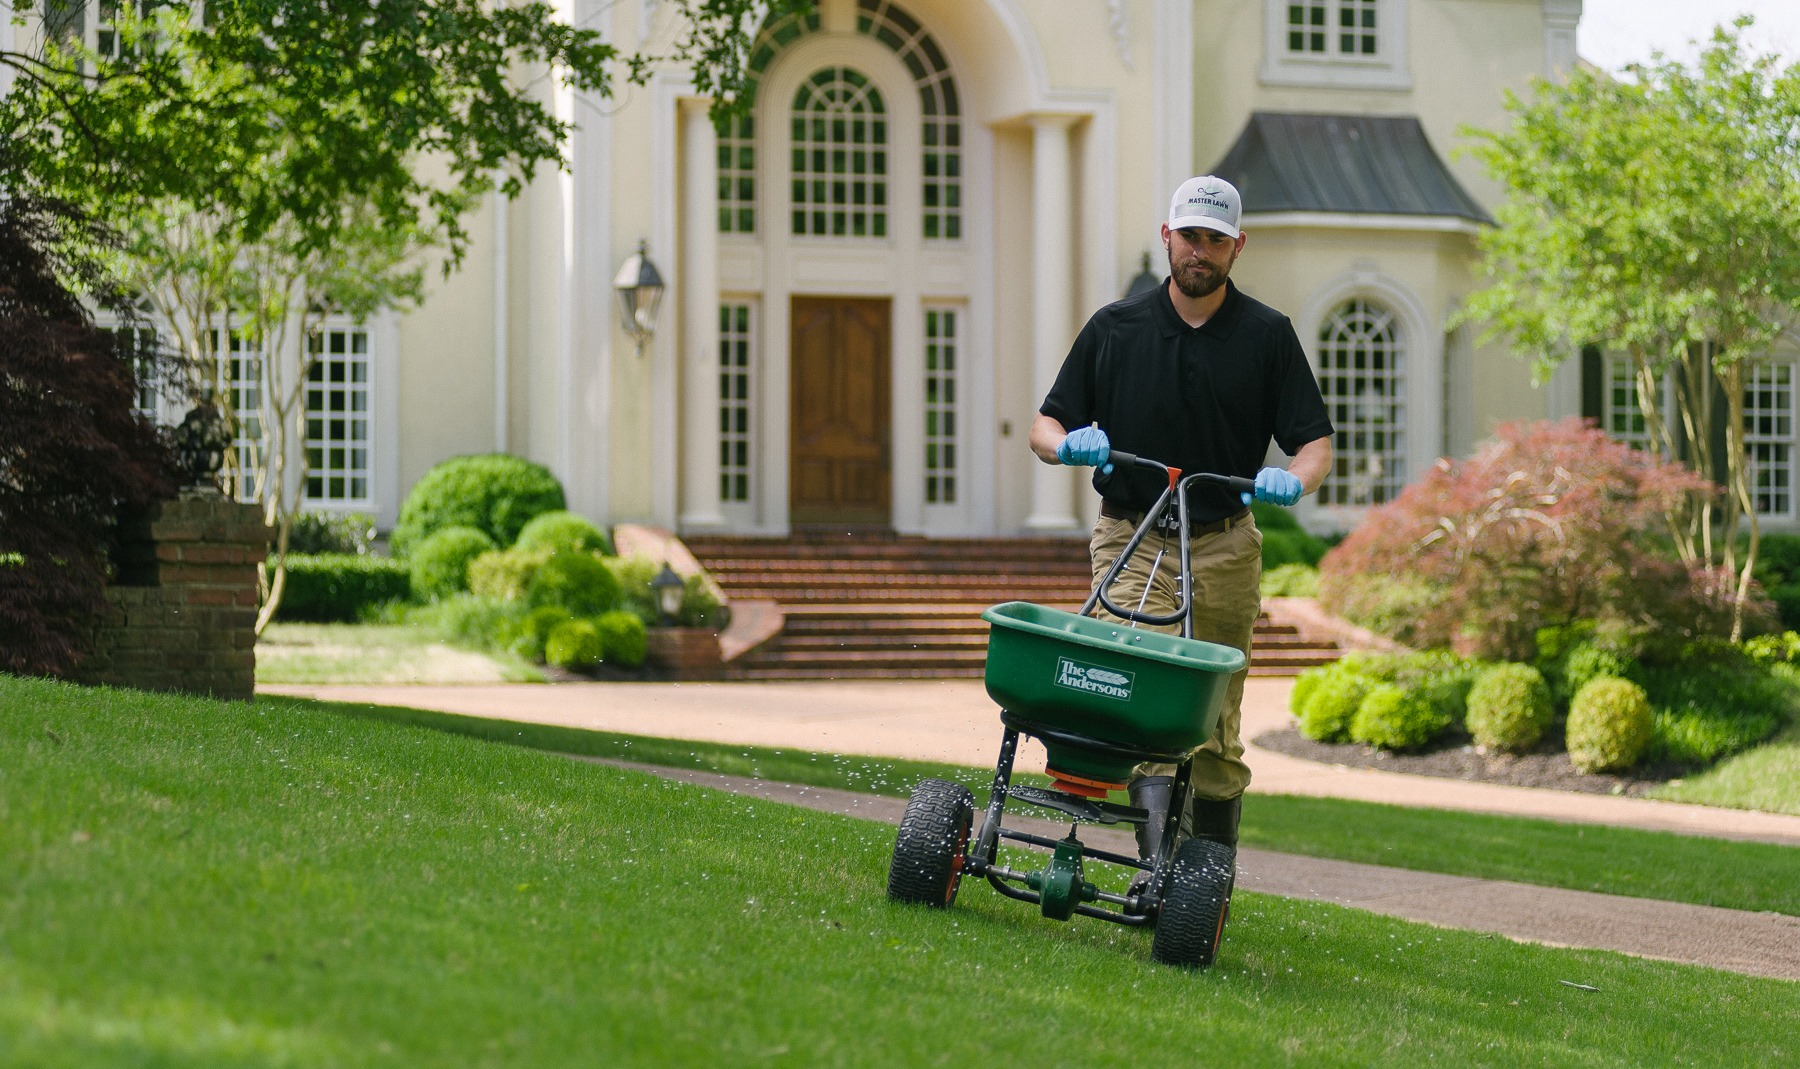 lawn fertilizer service in Memphis Tennessee and Northern Mississippi